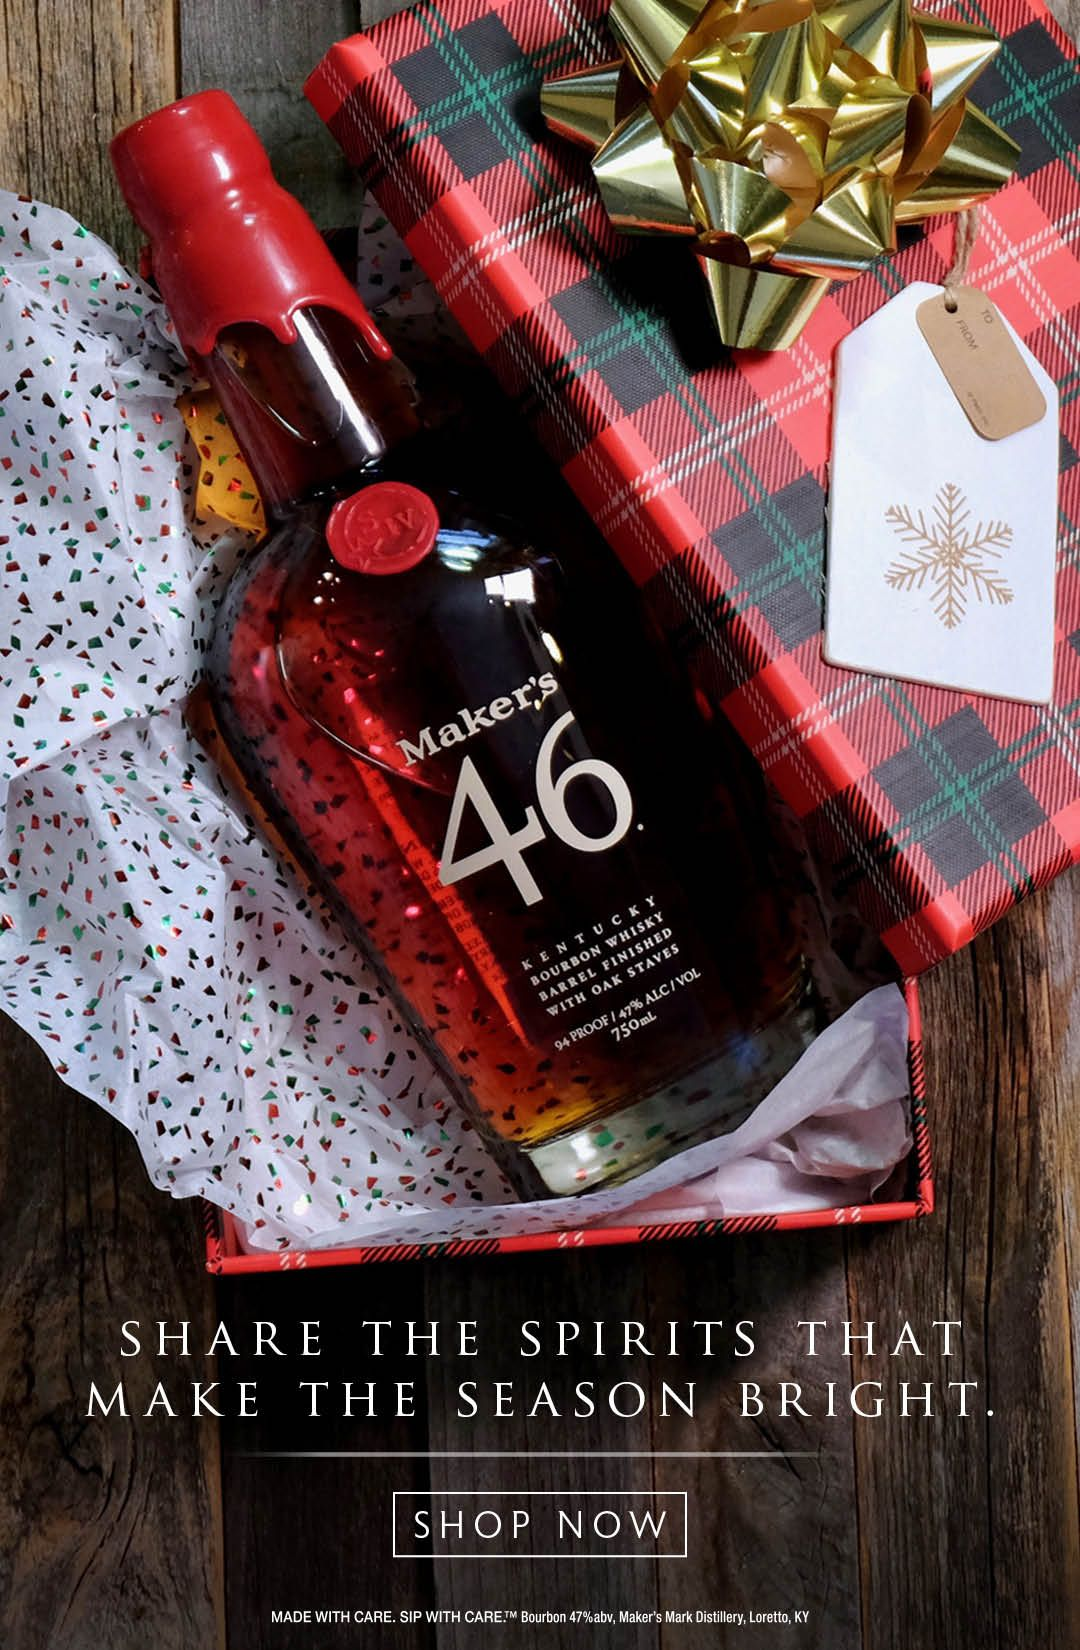 Don T Know What List You Re On But Maker S Mark This Time Of The Year Is Mighty Nice Deliver Deliciousnes Holiday Drinks Homemade Liquor Best Probiotic Foods